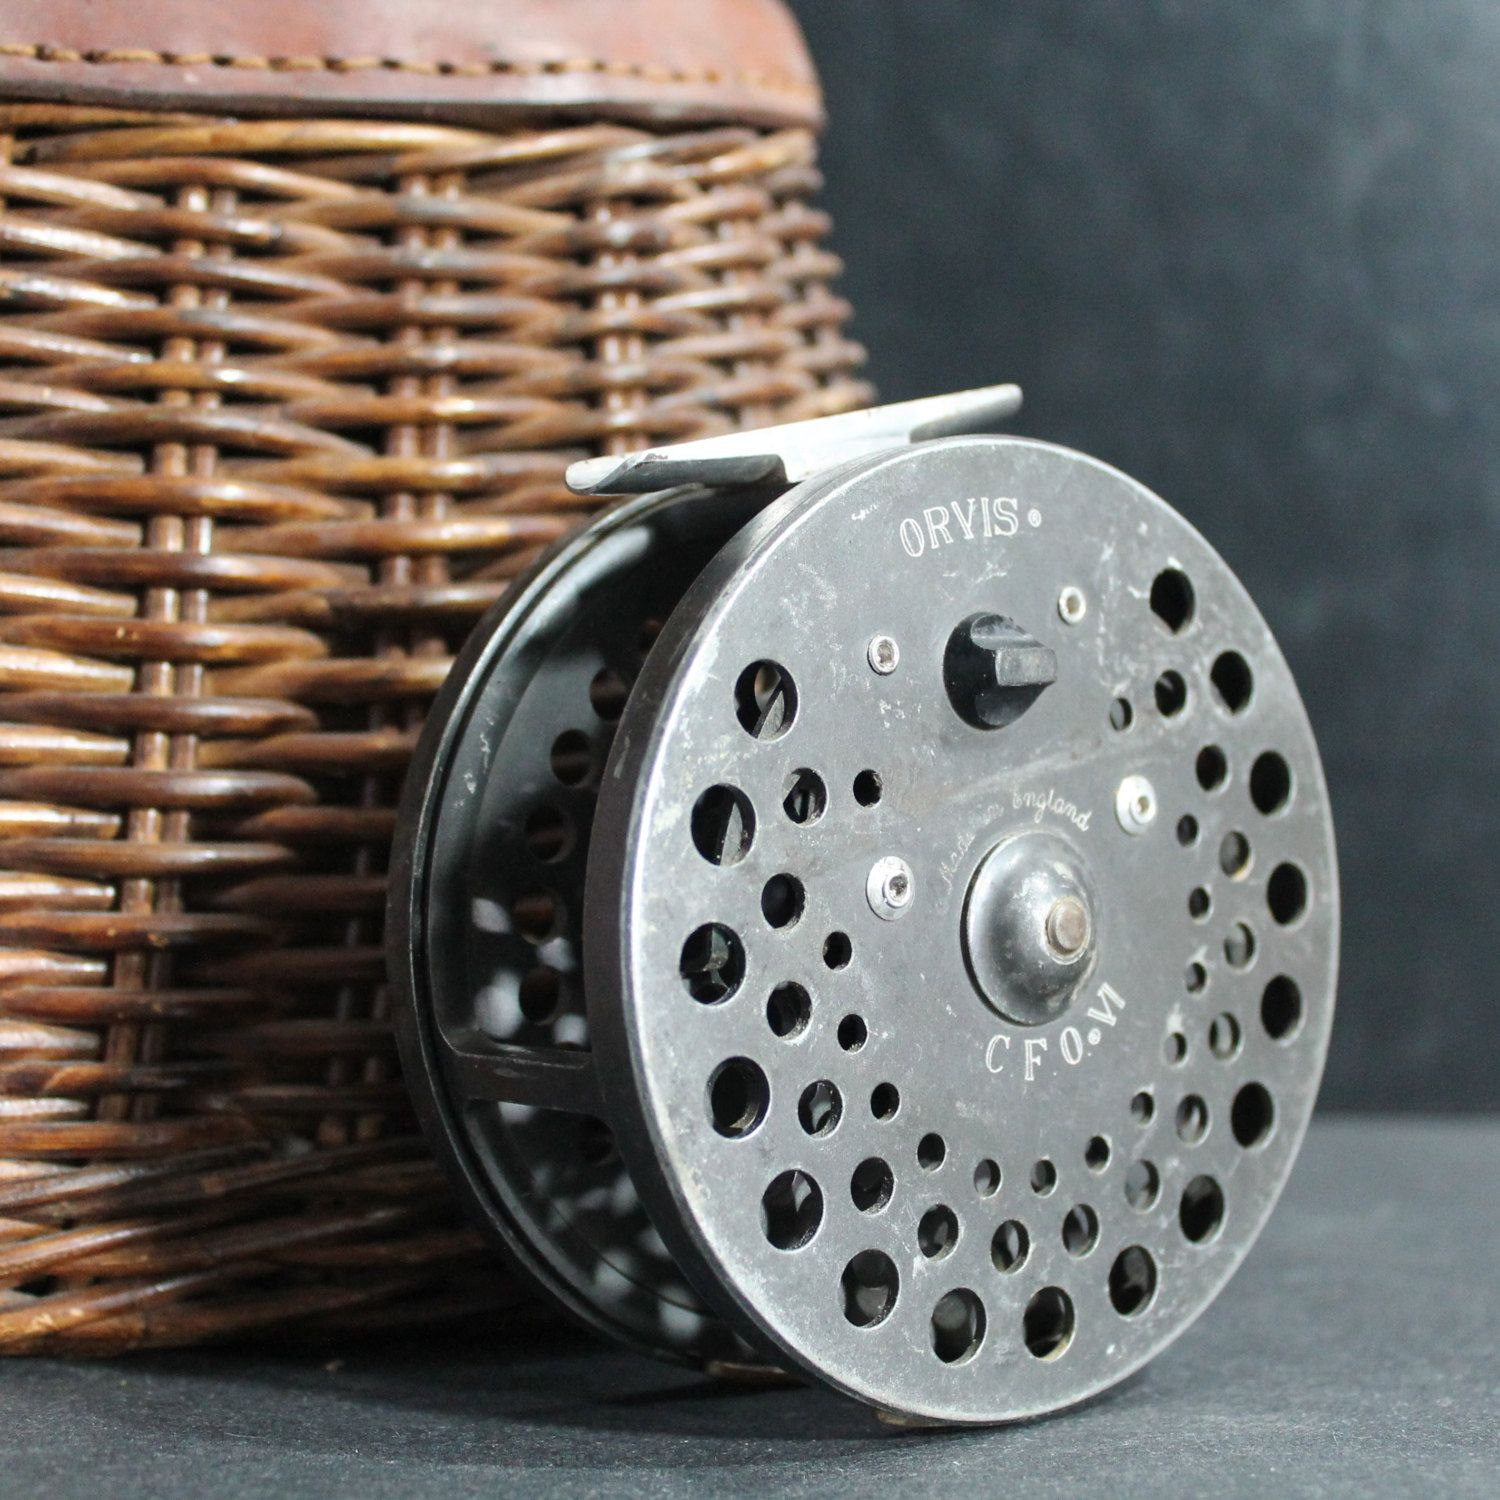 Vintage Orvis CFO VI reel made in England Oustanding fly